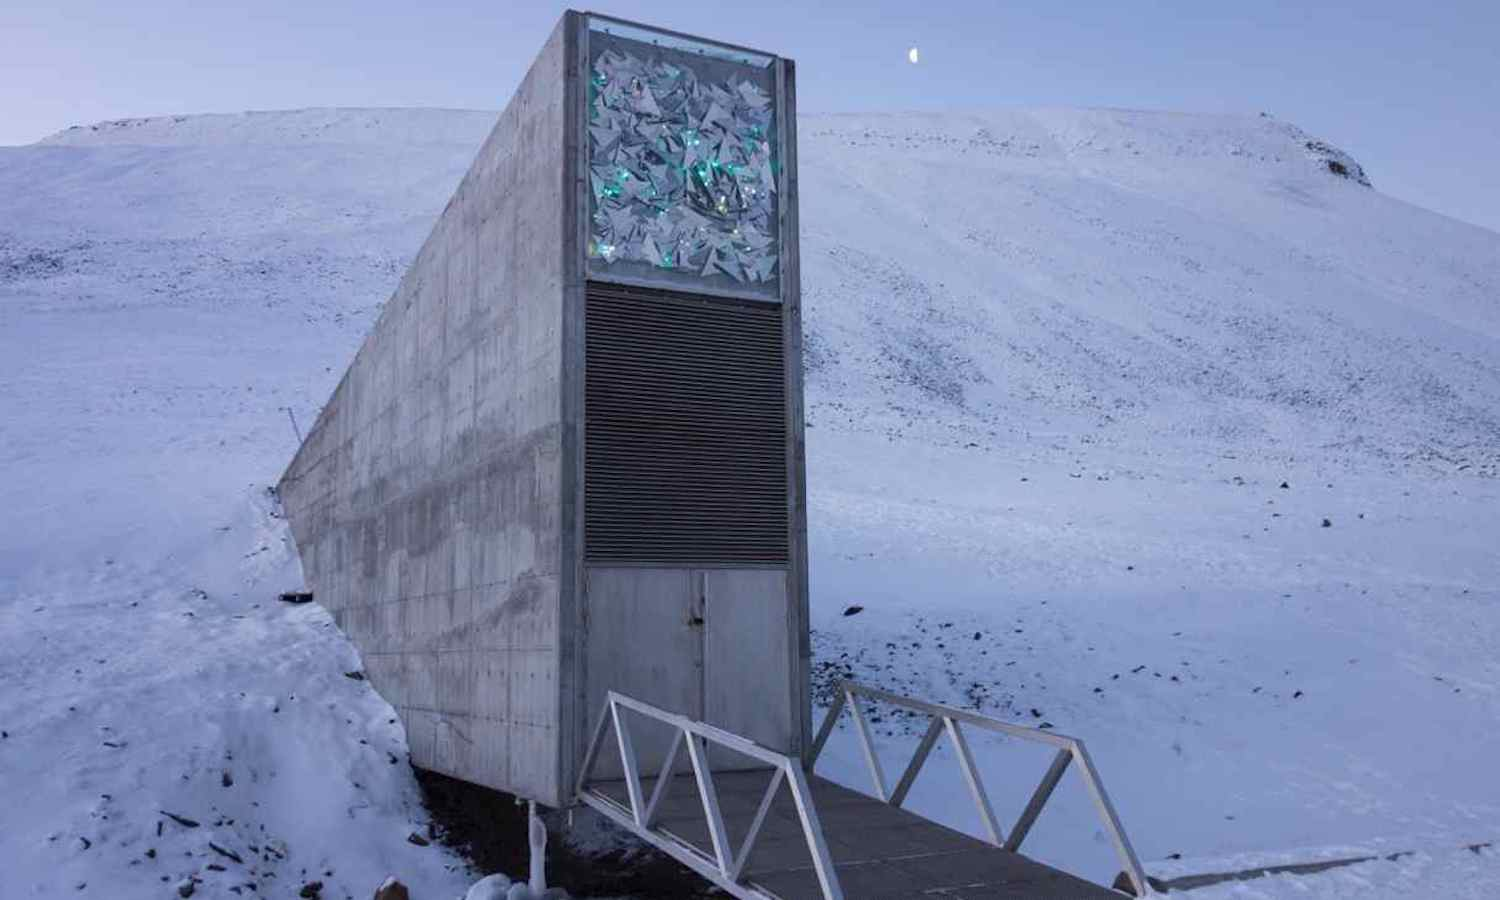 Storing nearly 1 million seeds from genebanks worldwide in a cave at -18 degrees Celsius, the Svalbard Global Seed Vault ensures that if a genebank's seeds vanish or fall into ruin, much the world's biodiversity will still remain helping ensure food security.